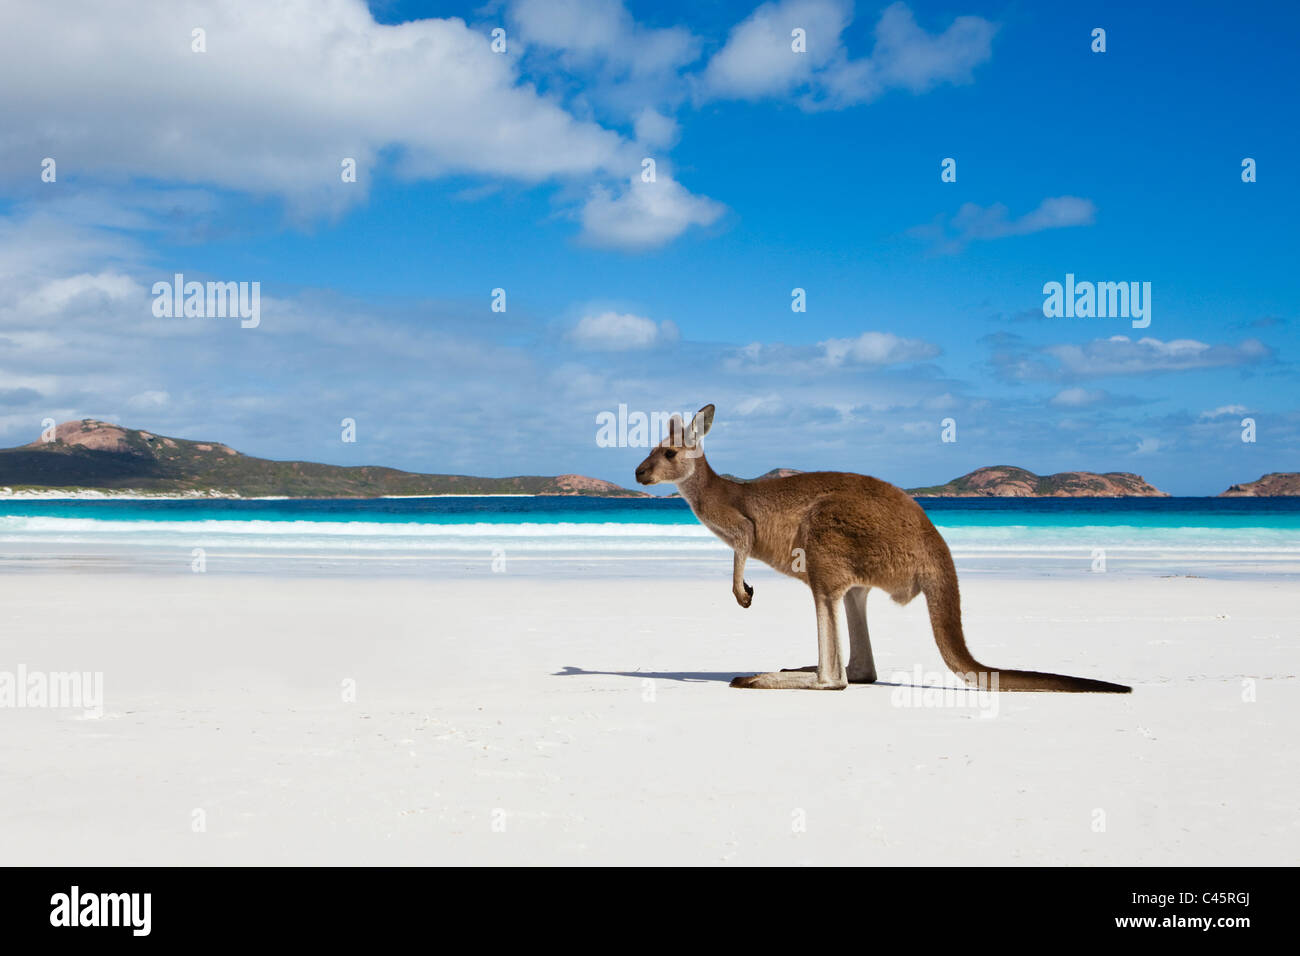 Kangaroo sulla spiaggia a Lucky Bay. Cape Le Grand National Park, Esperance, Australia occidentale, Australia Immagini Stock